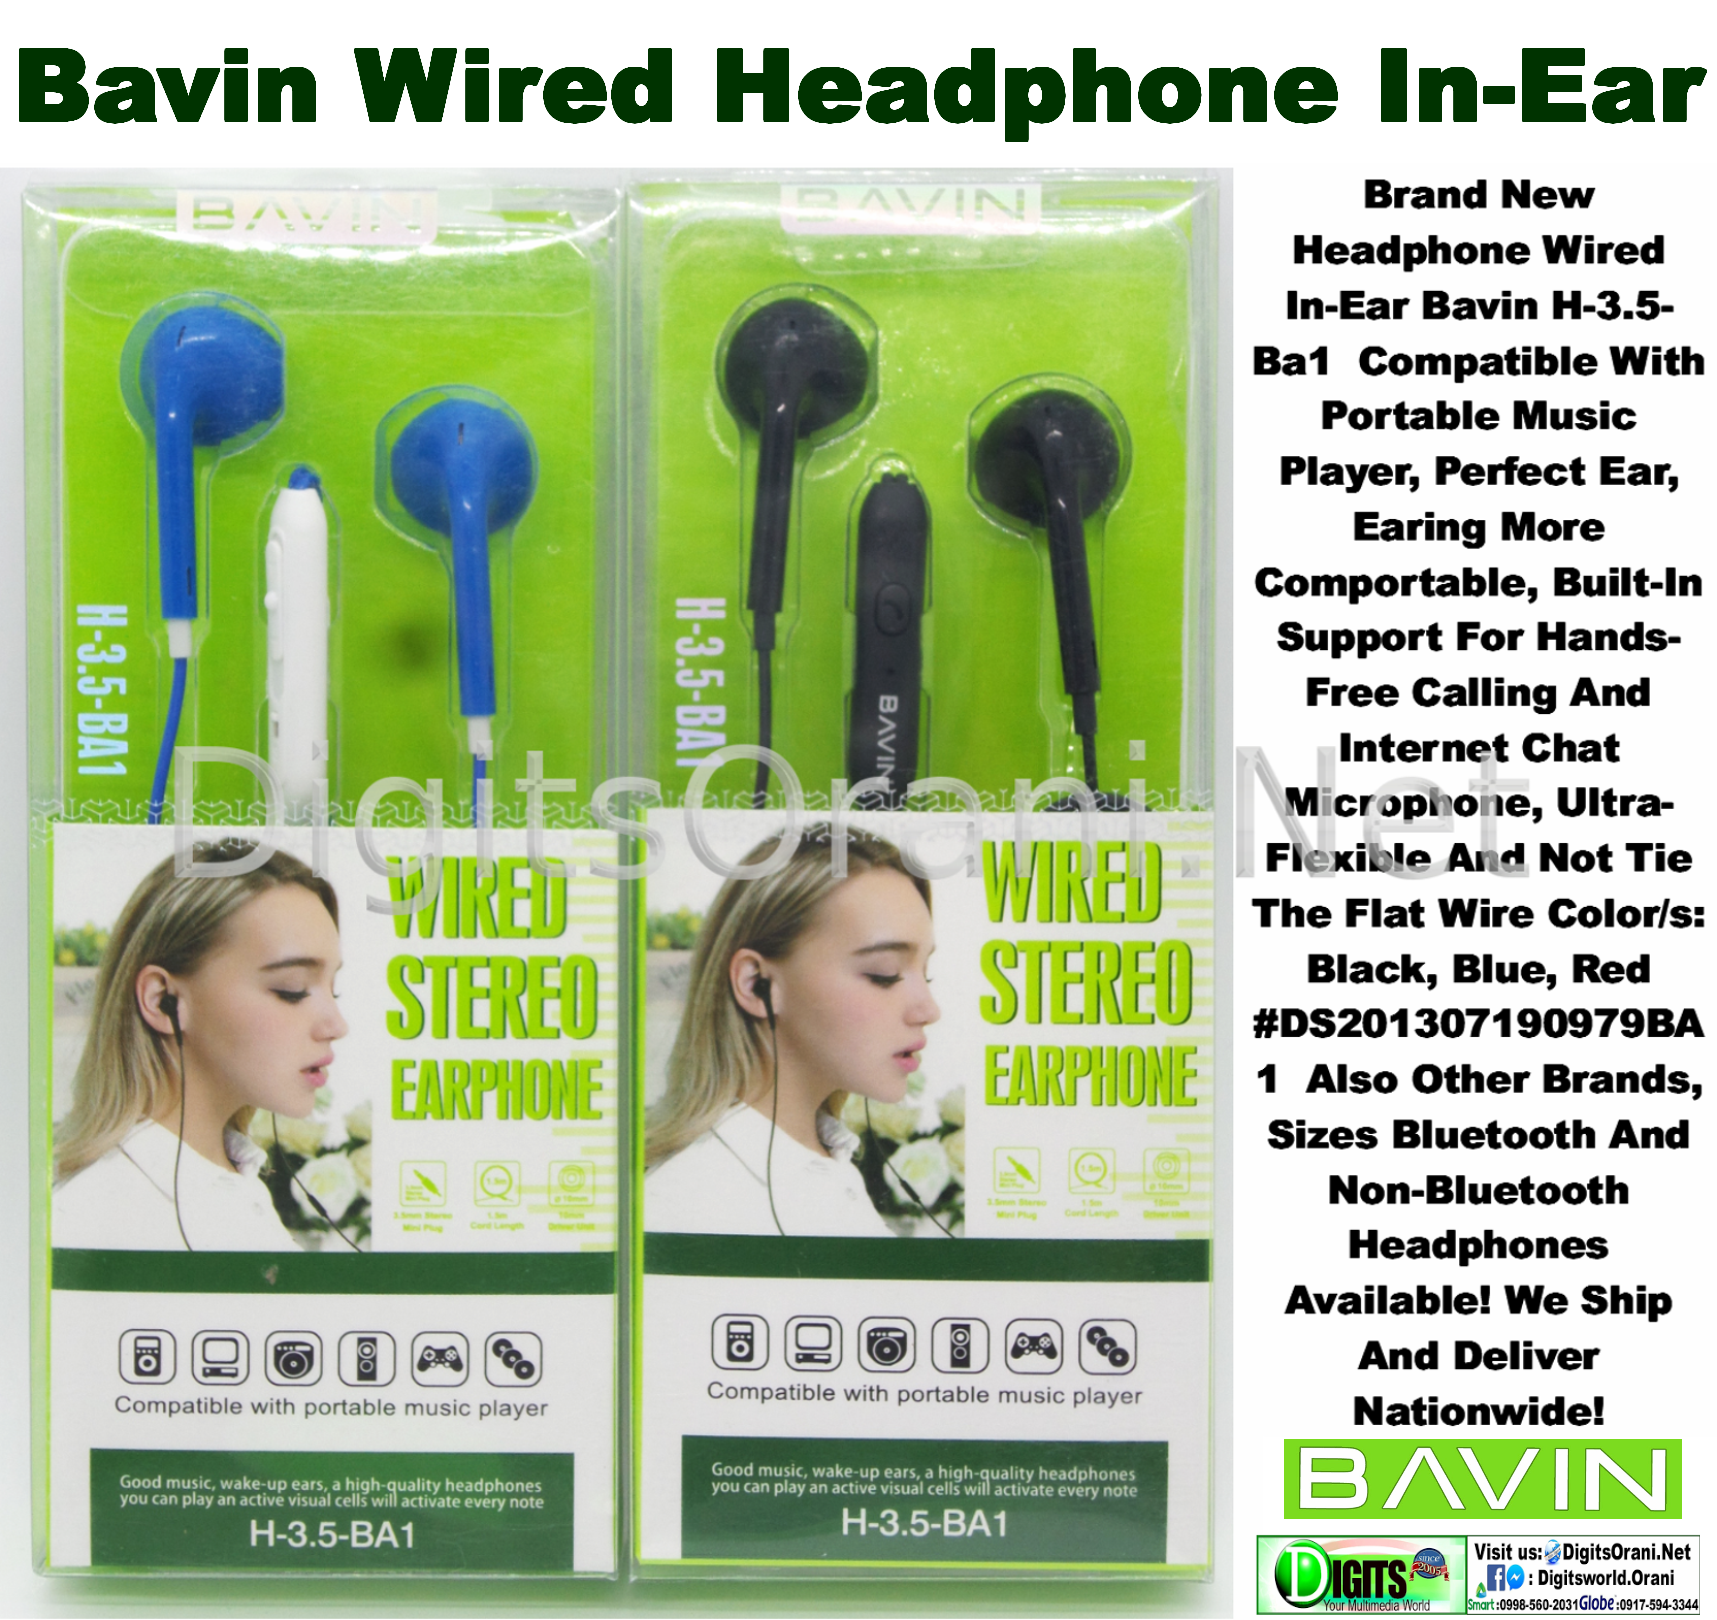 Original Headphone In-Ear Bavin H-3 5-Ba1 Compatible With Portable Music  Player, Perfect Ear, Earing More Comportable, Built-In Support For  Hands-Free